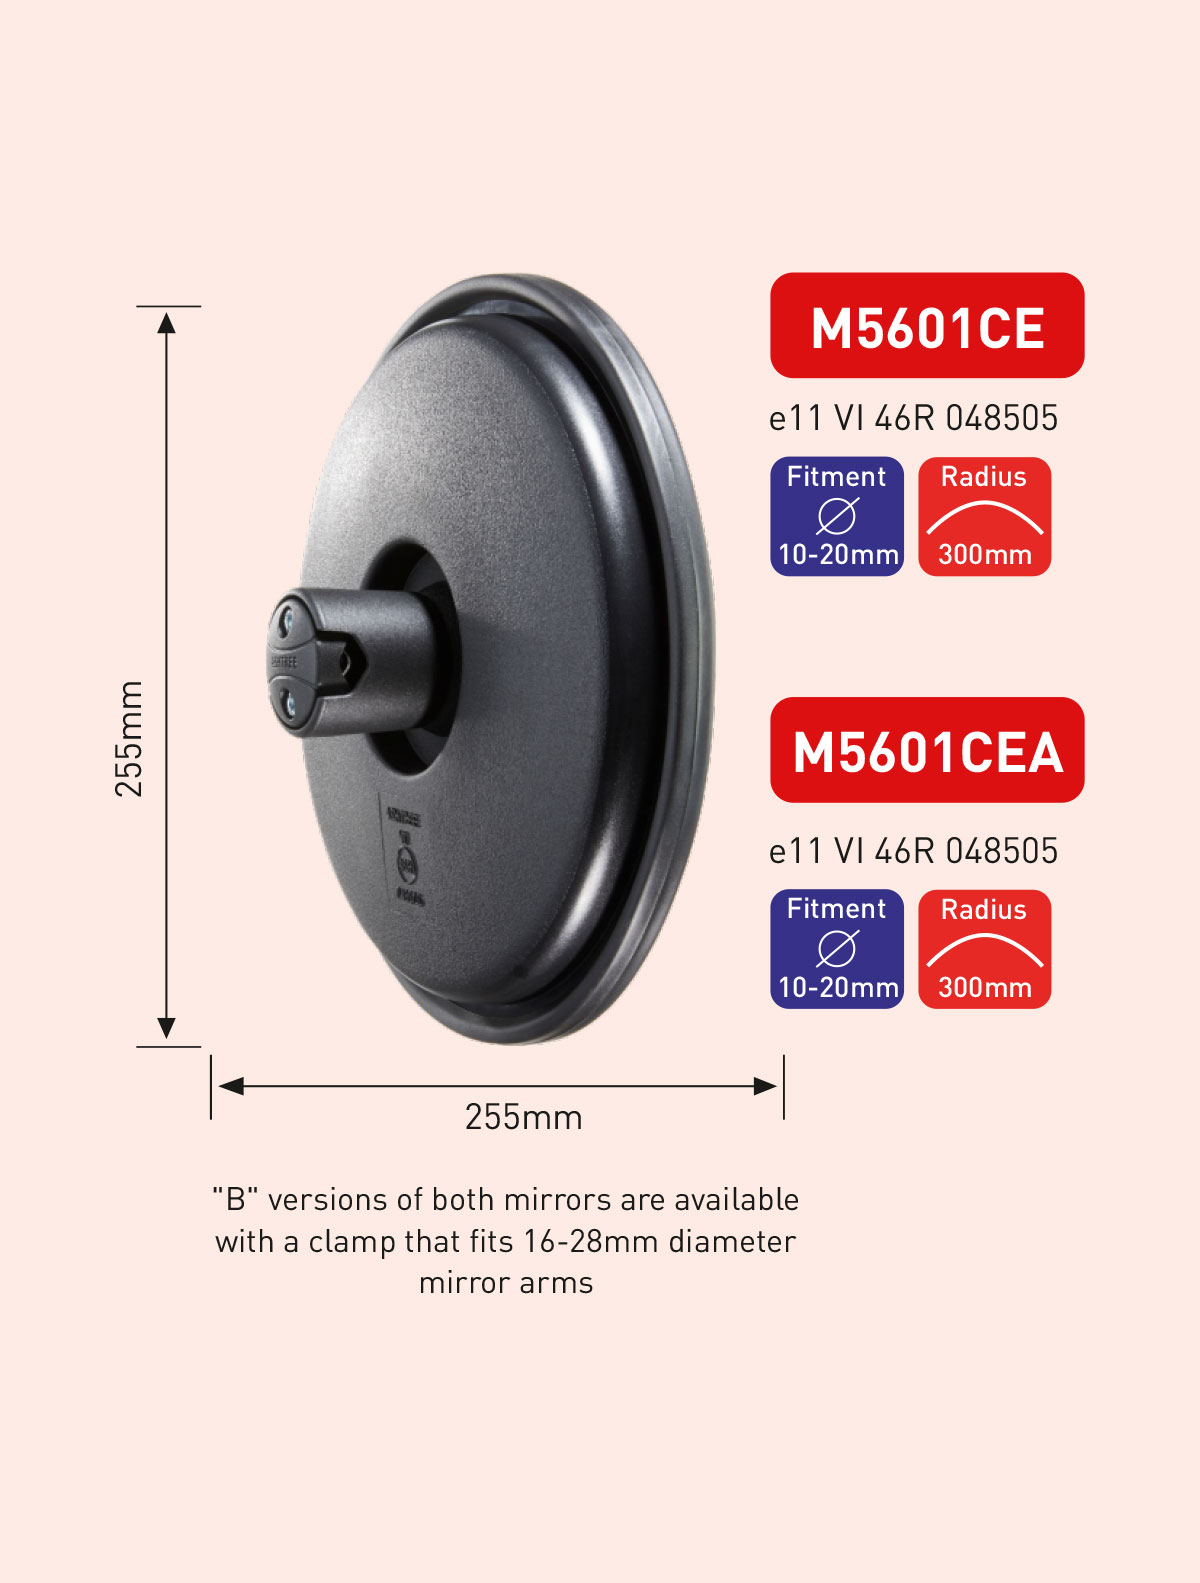 M5601CE M5601CEA Safety Mirrors